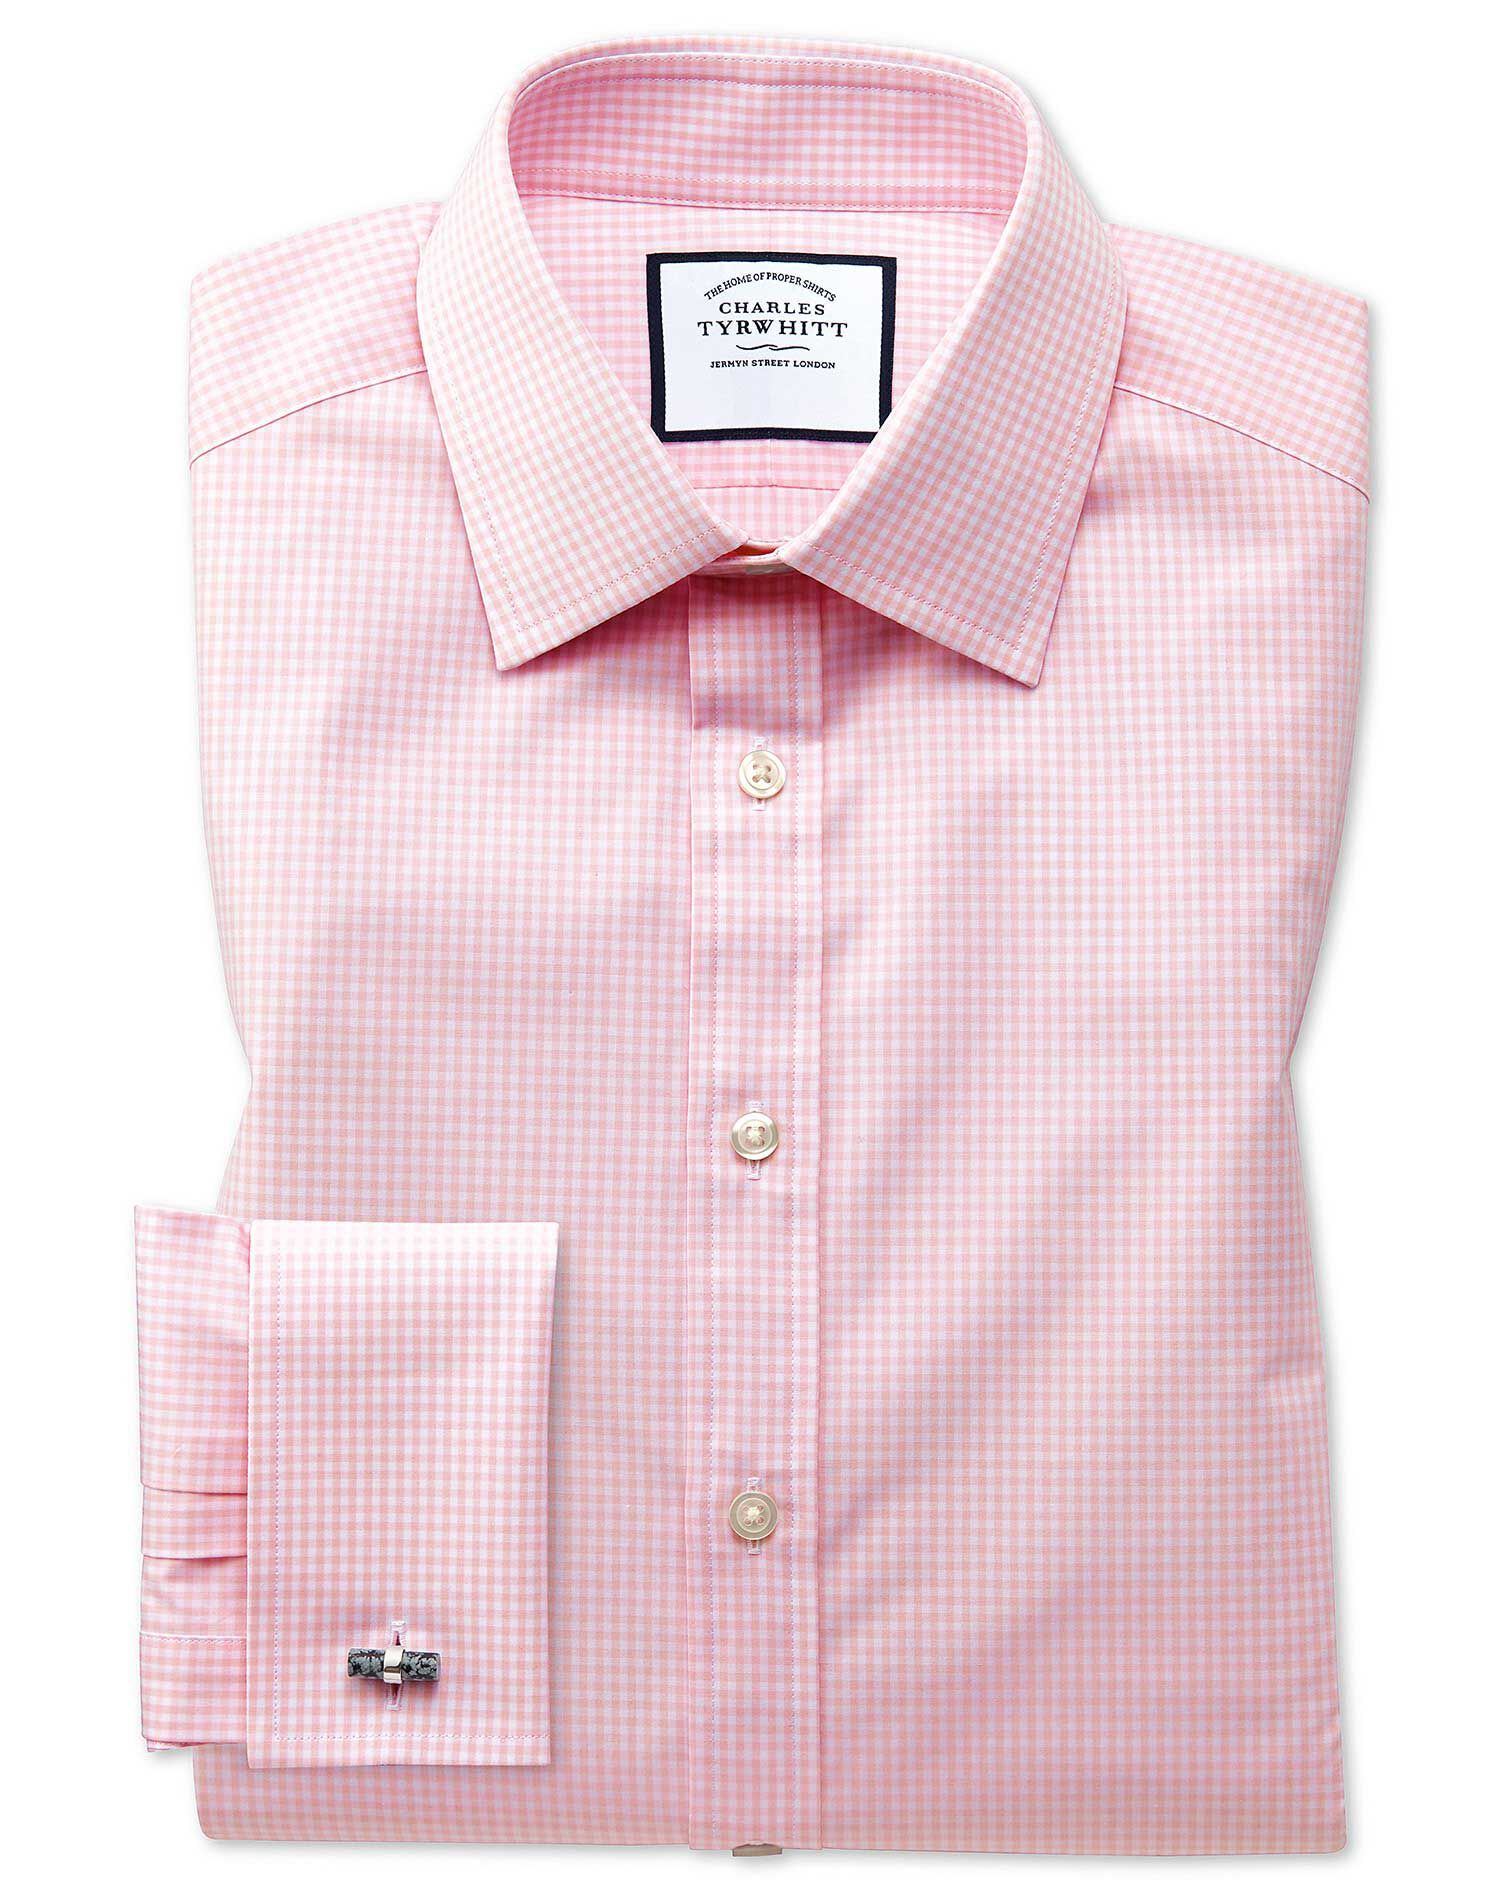 Classic Fit Small Gingham Light Pink Cotton Formal Shirt Double Cuff Size 16/38 by Charles Tyrwhitt